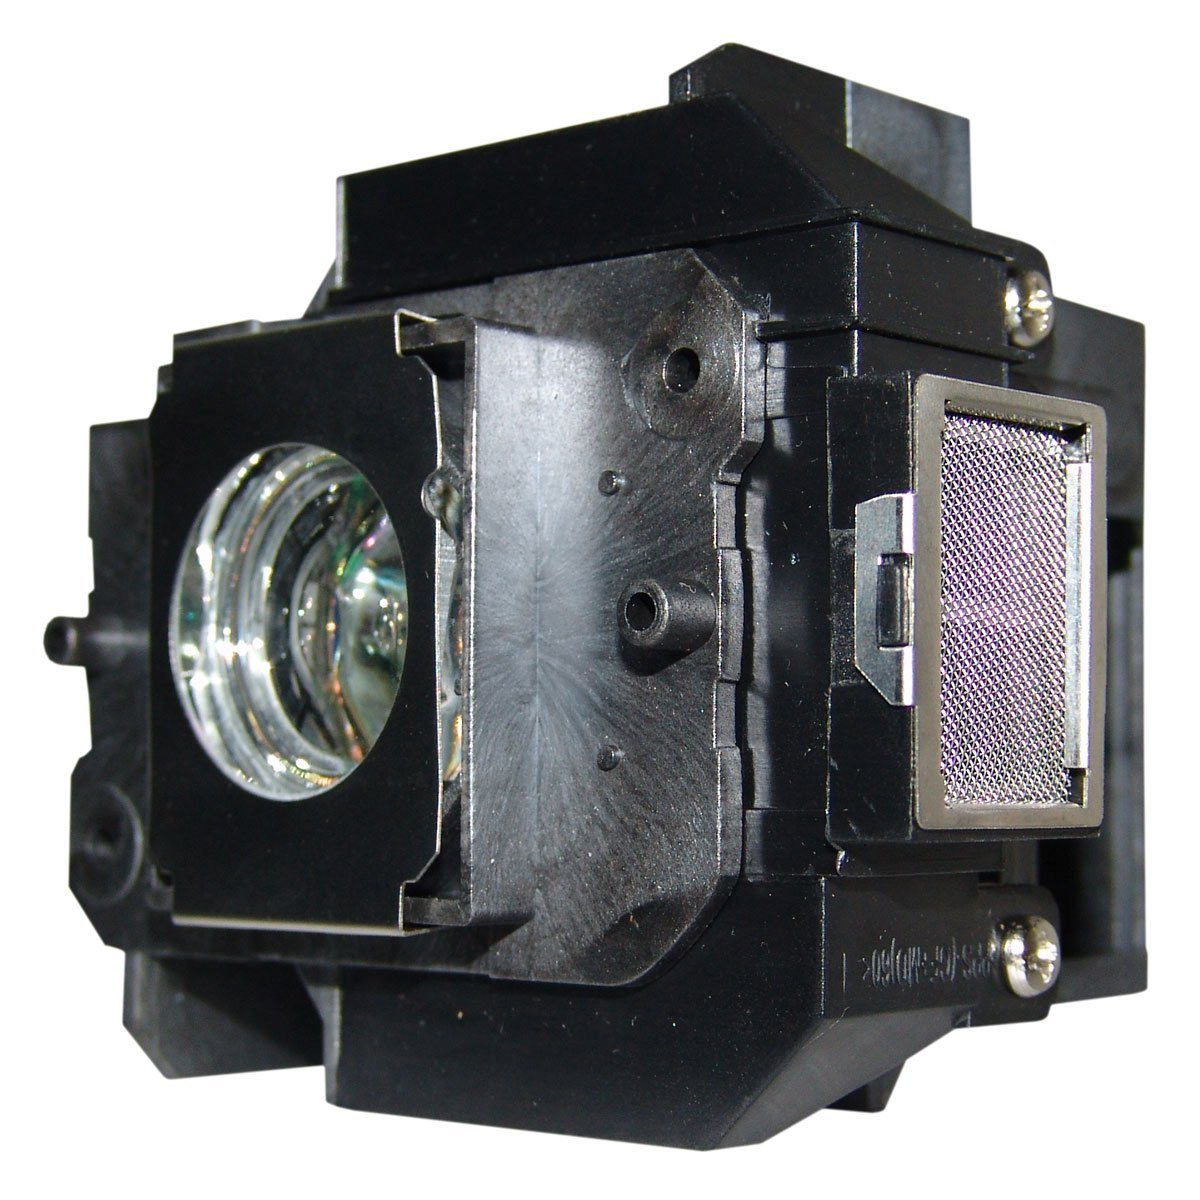 Projector Lamp Bulb ELPLP59 V13H010L59 for Epson EH-R1000 EH-R2000 EH-R4000 / PowerLite Pro Cinema 6100 With Housing high quality elplp49 replacement projector lamp bulb for epson powerlite pro cinema 91009350 powerlite pro cinema 9700ub 9500ub